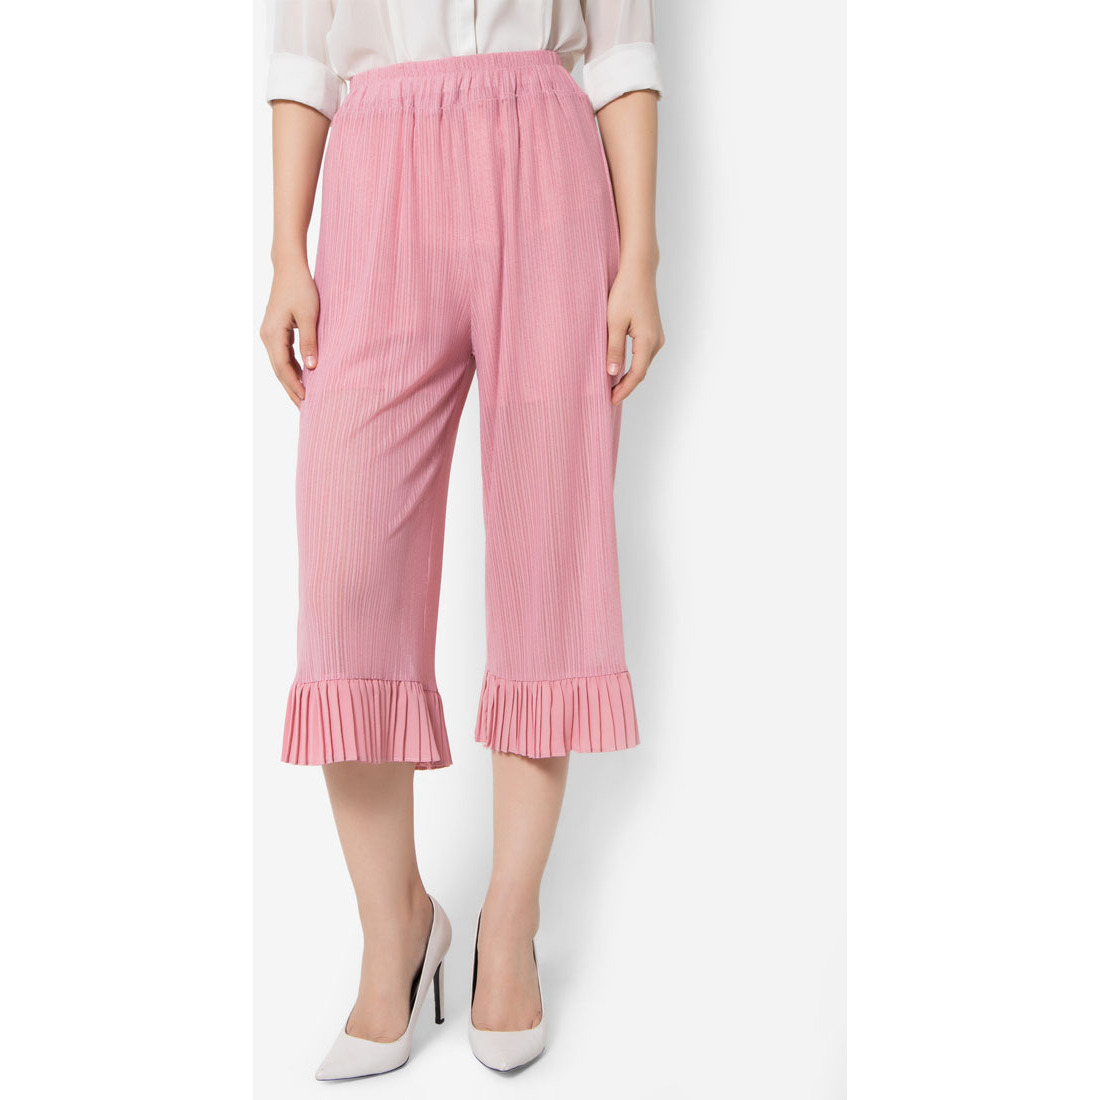 MirrorDress-Half See-Through Mesh With Pleated Hem Capri Pants (Pink)